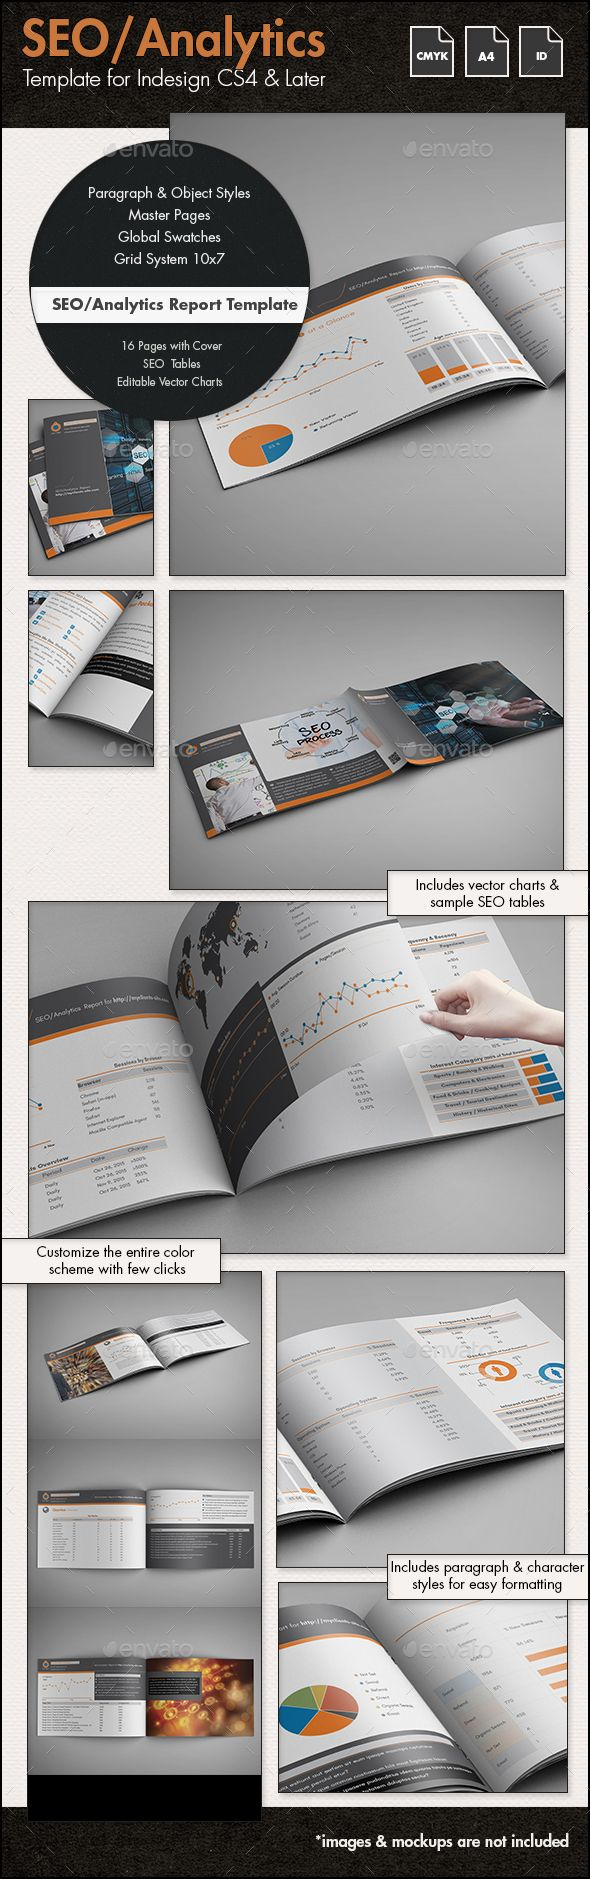 SEO Report / #Proposal Template - A4 Landscape - Proposals & #Invoices Stationery Download here: https://graphicriver.net/item/seo-report-proposal-template-a4-landscape/14347214?ref=alena994